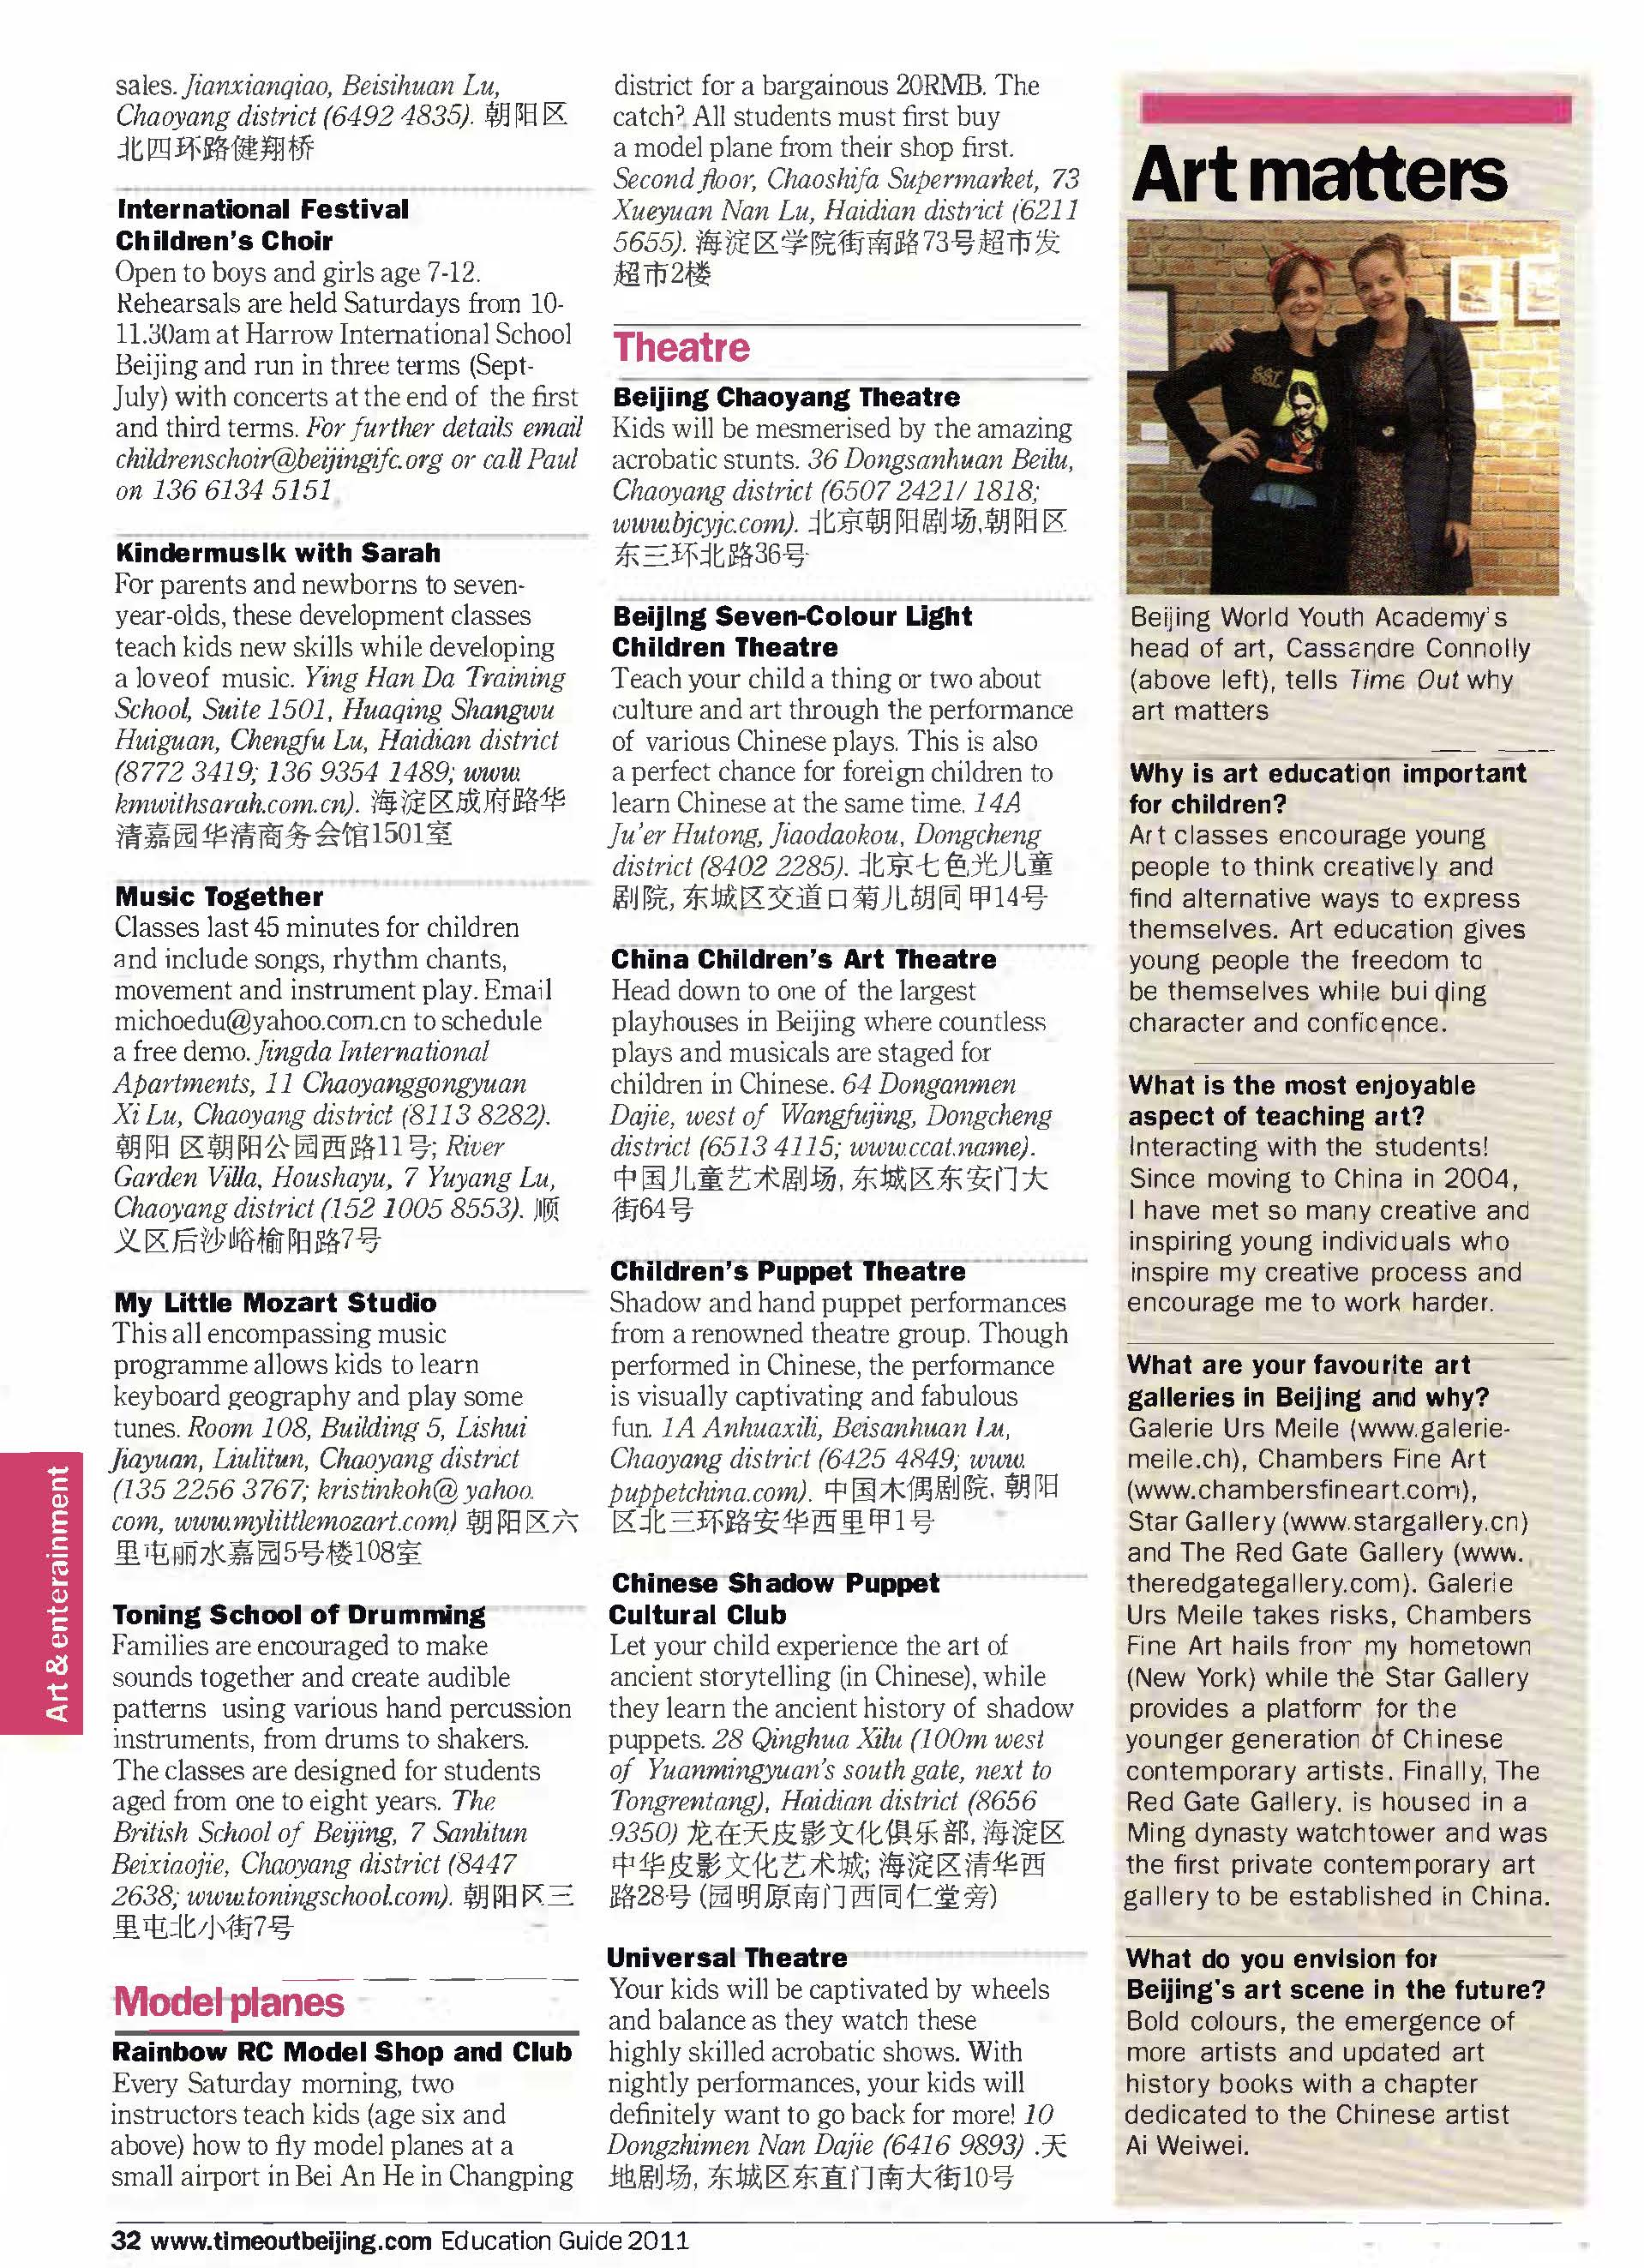 Time Out 201103_Page_1.jpg